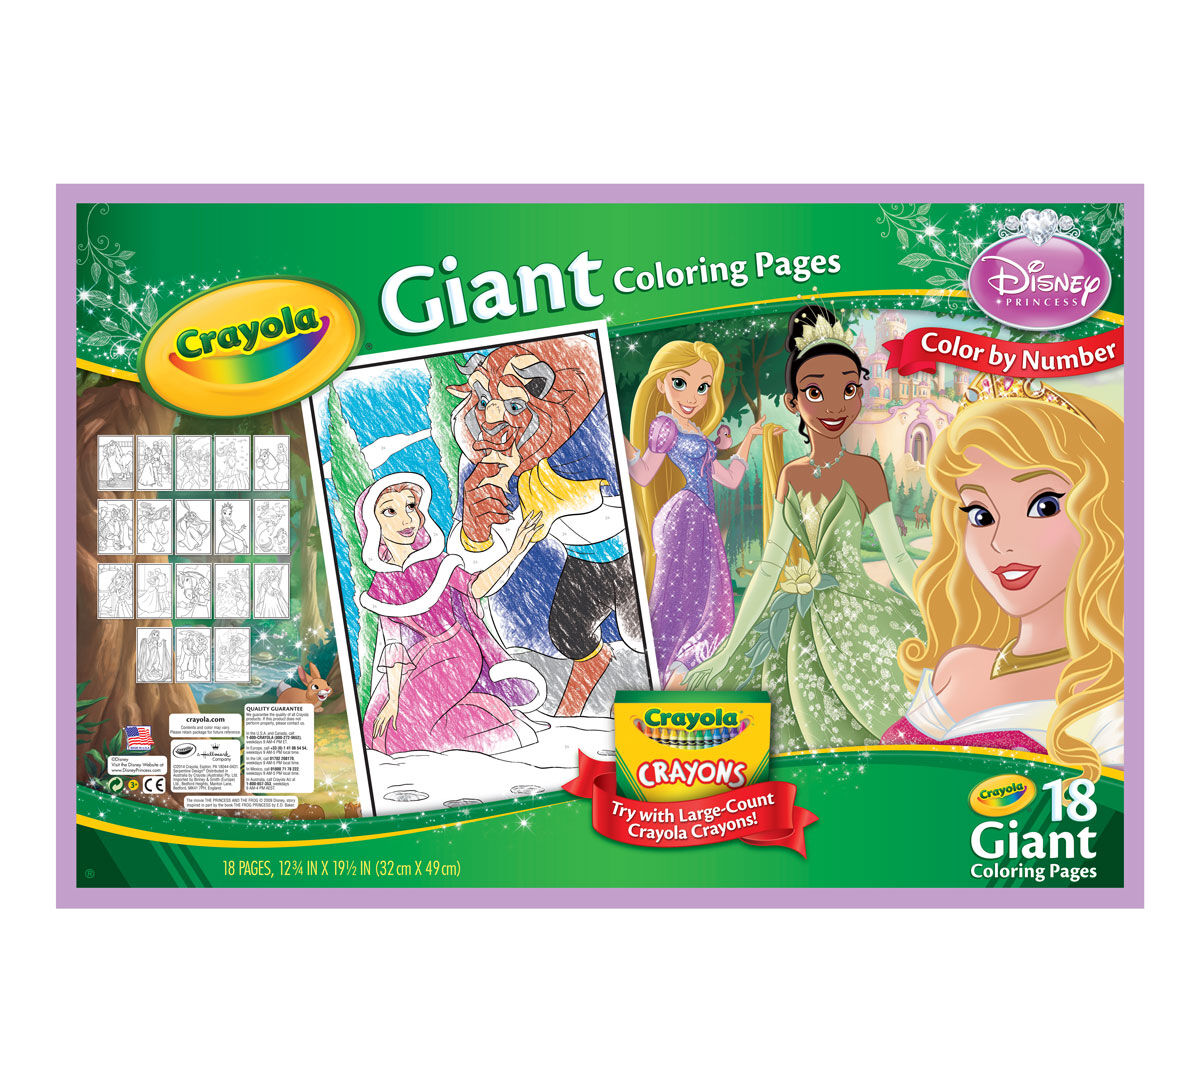 giant coloring pages disney princess - Crayola Coloring Pages